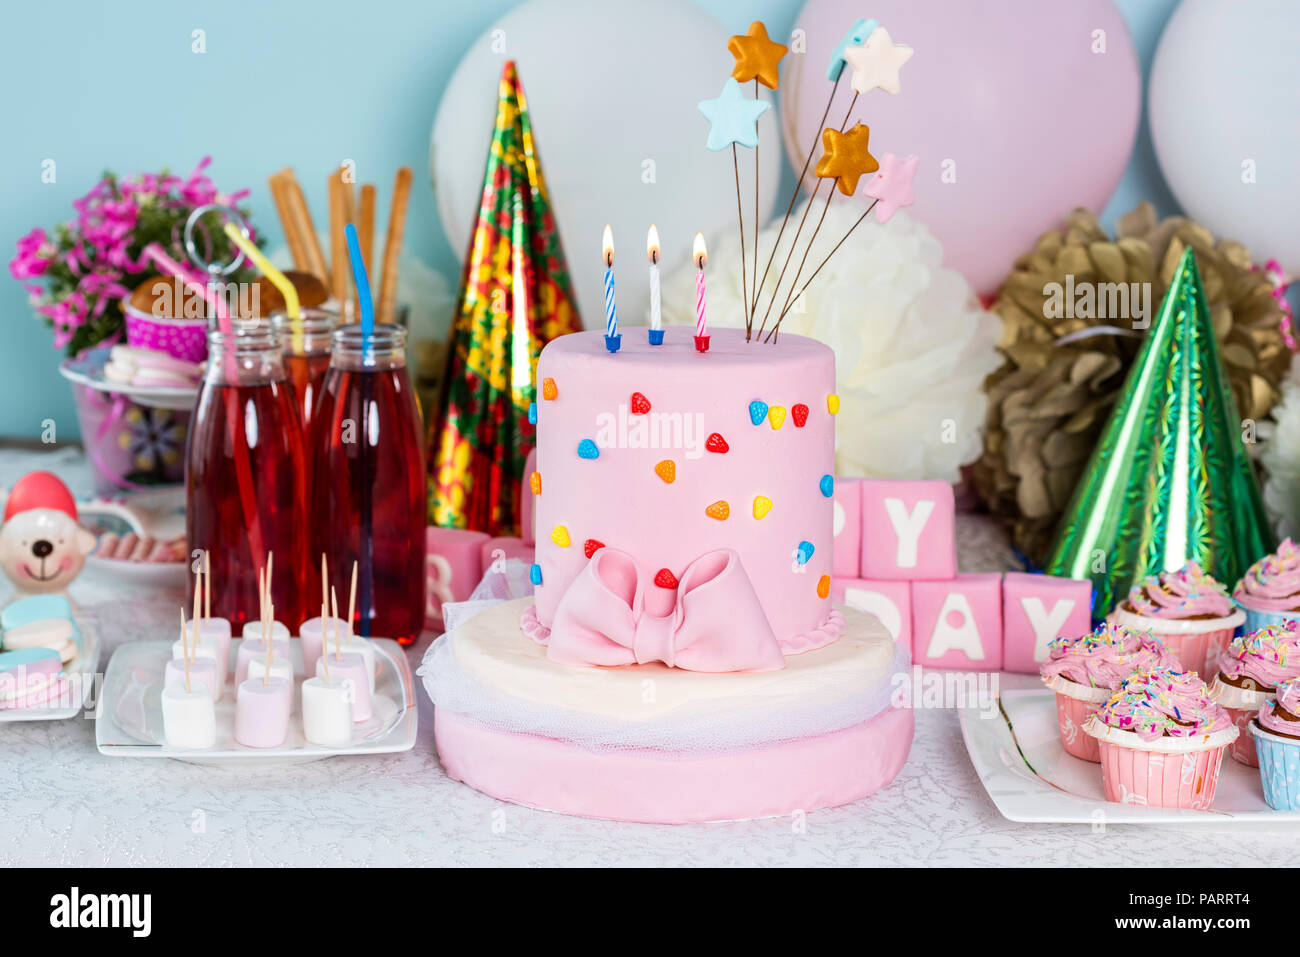 Birthday Cake Birthday Foods And Table Decorations Stock